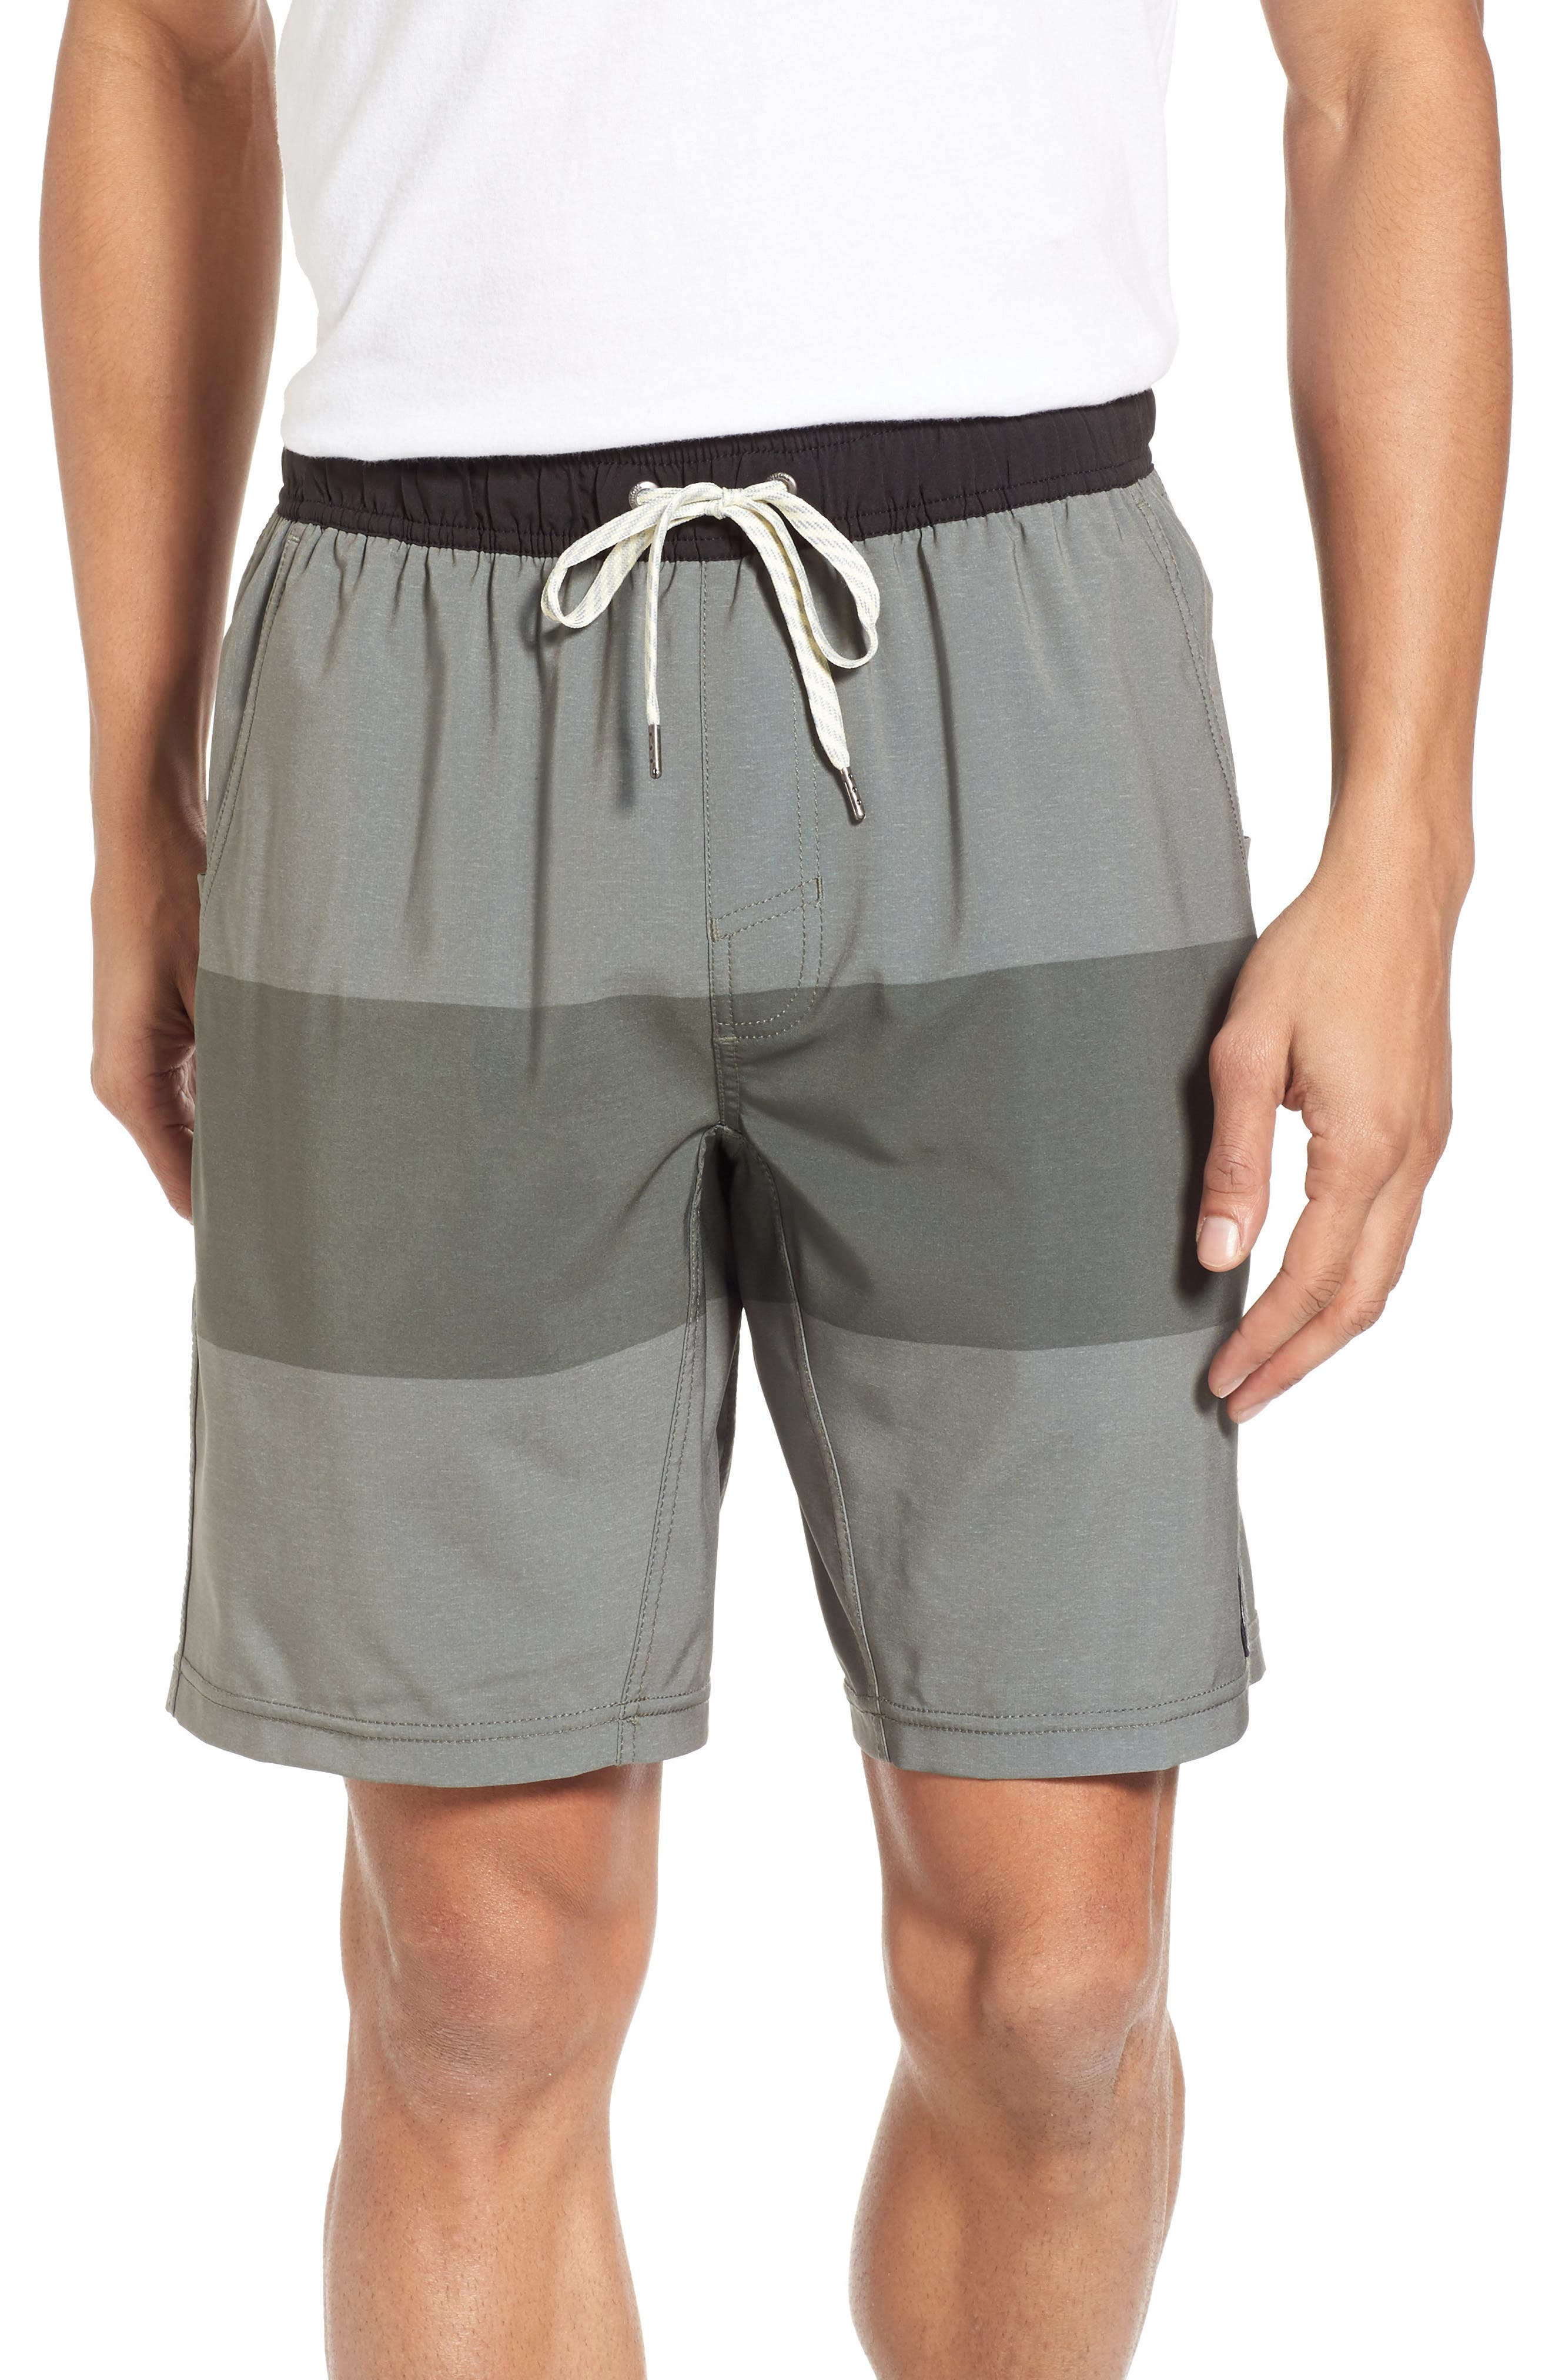 8104161e3b Men's Shorts at Search By Inseam